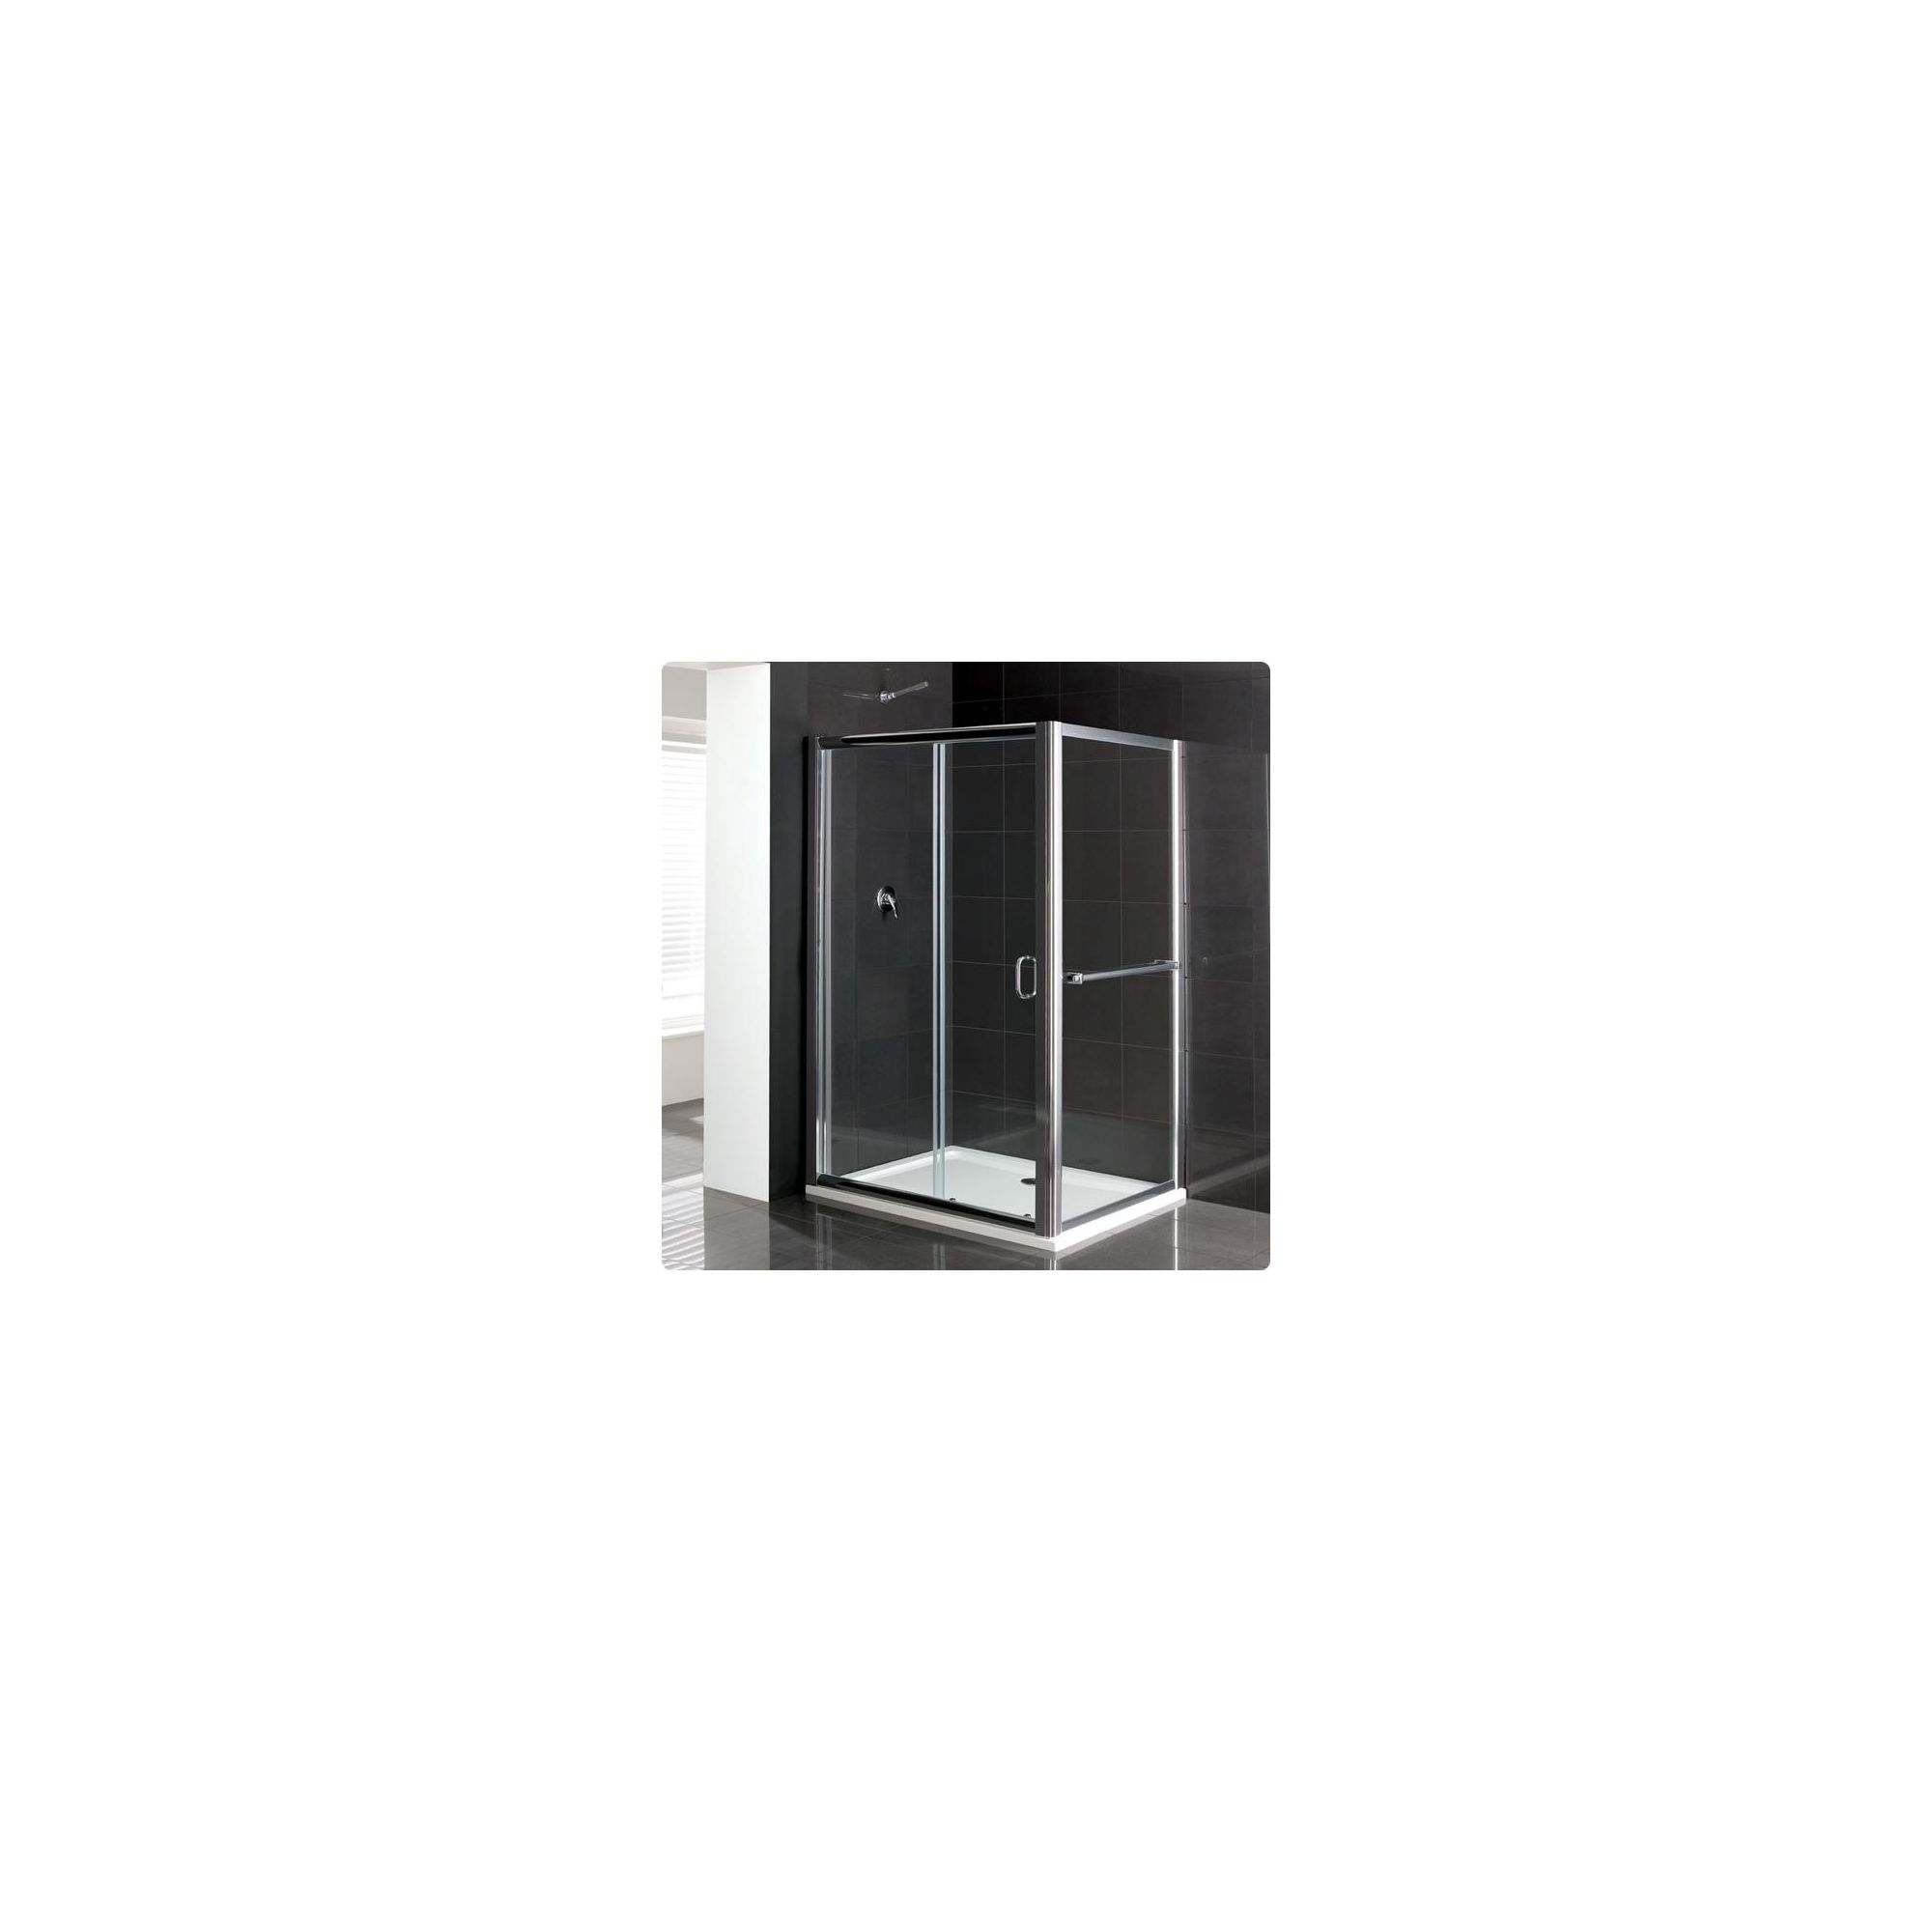 Duchy Elite Silver Sliding Door Shower Enclosure with Towel Rail, 1000mm x 800mm, Standard Tray, 6mm Glass at Tesco Direct